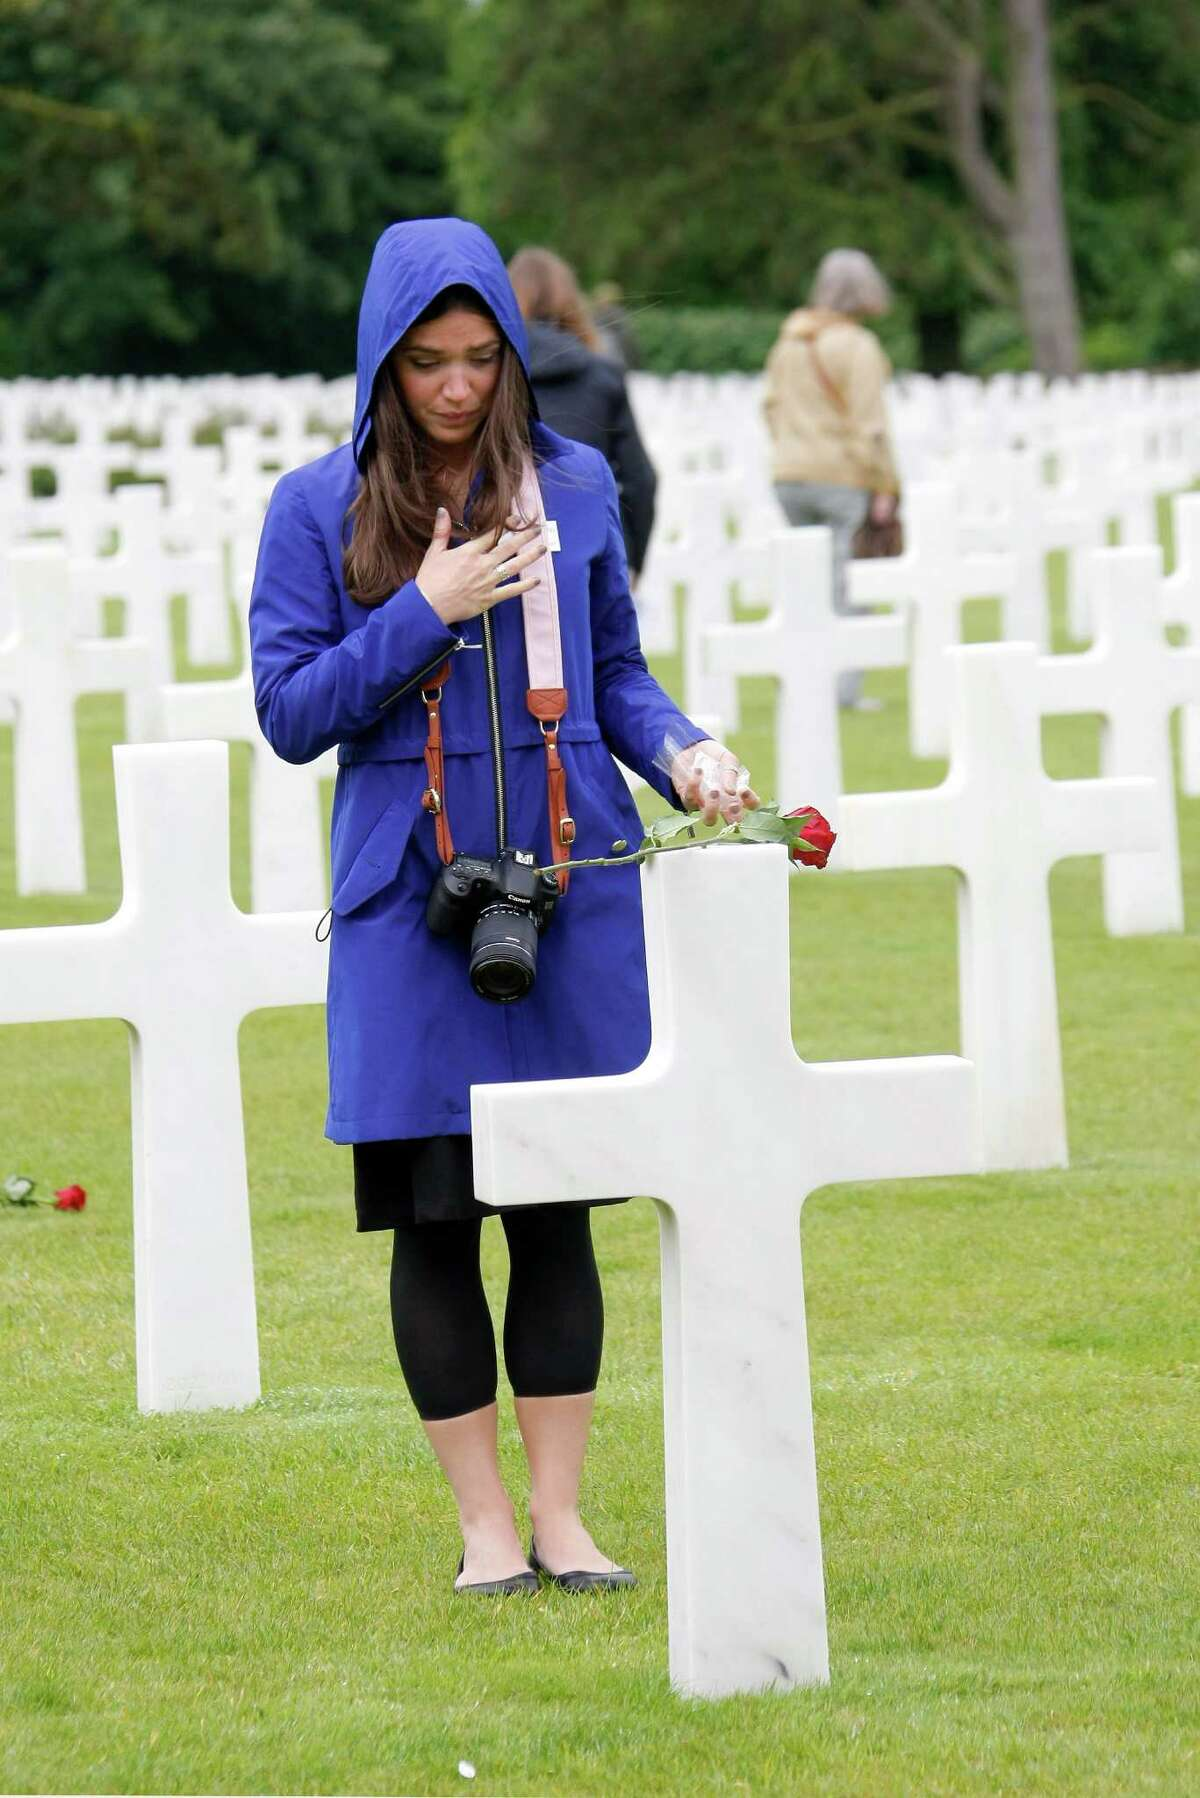 Marissa Neitling, 30, from Lake Oswego, Oregon, places a flower on a grave in the Normandy American Cemetery and Memorial, in Colleville sur Mer, France, Wednesday June 4, 2014. World leaders and veterans prepare to mark the 70th anniversary of the invasion this week in Normandy.